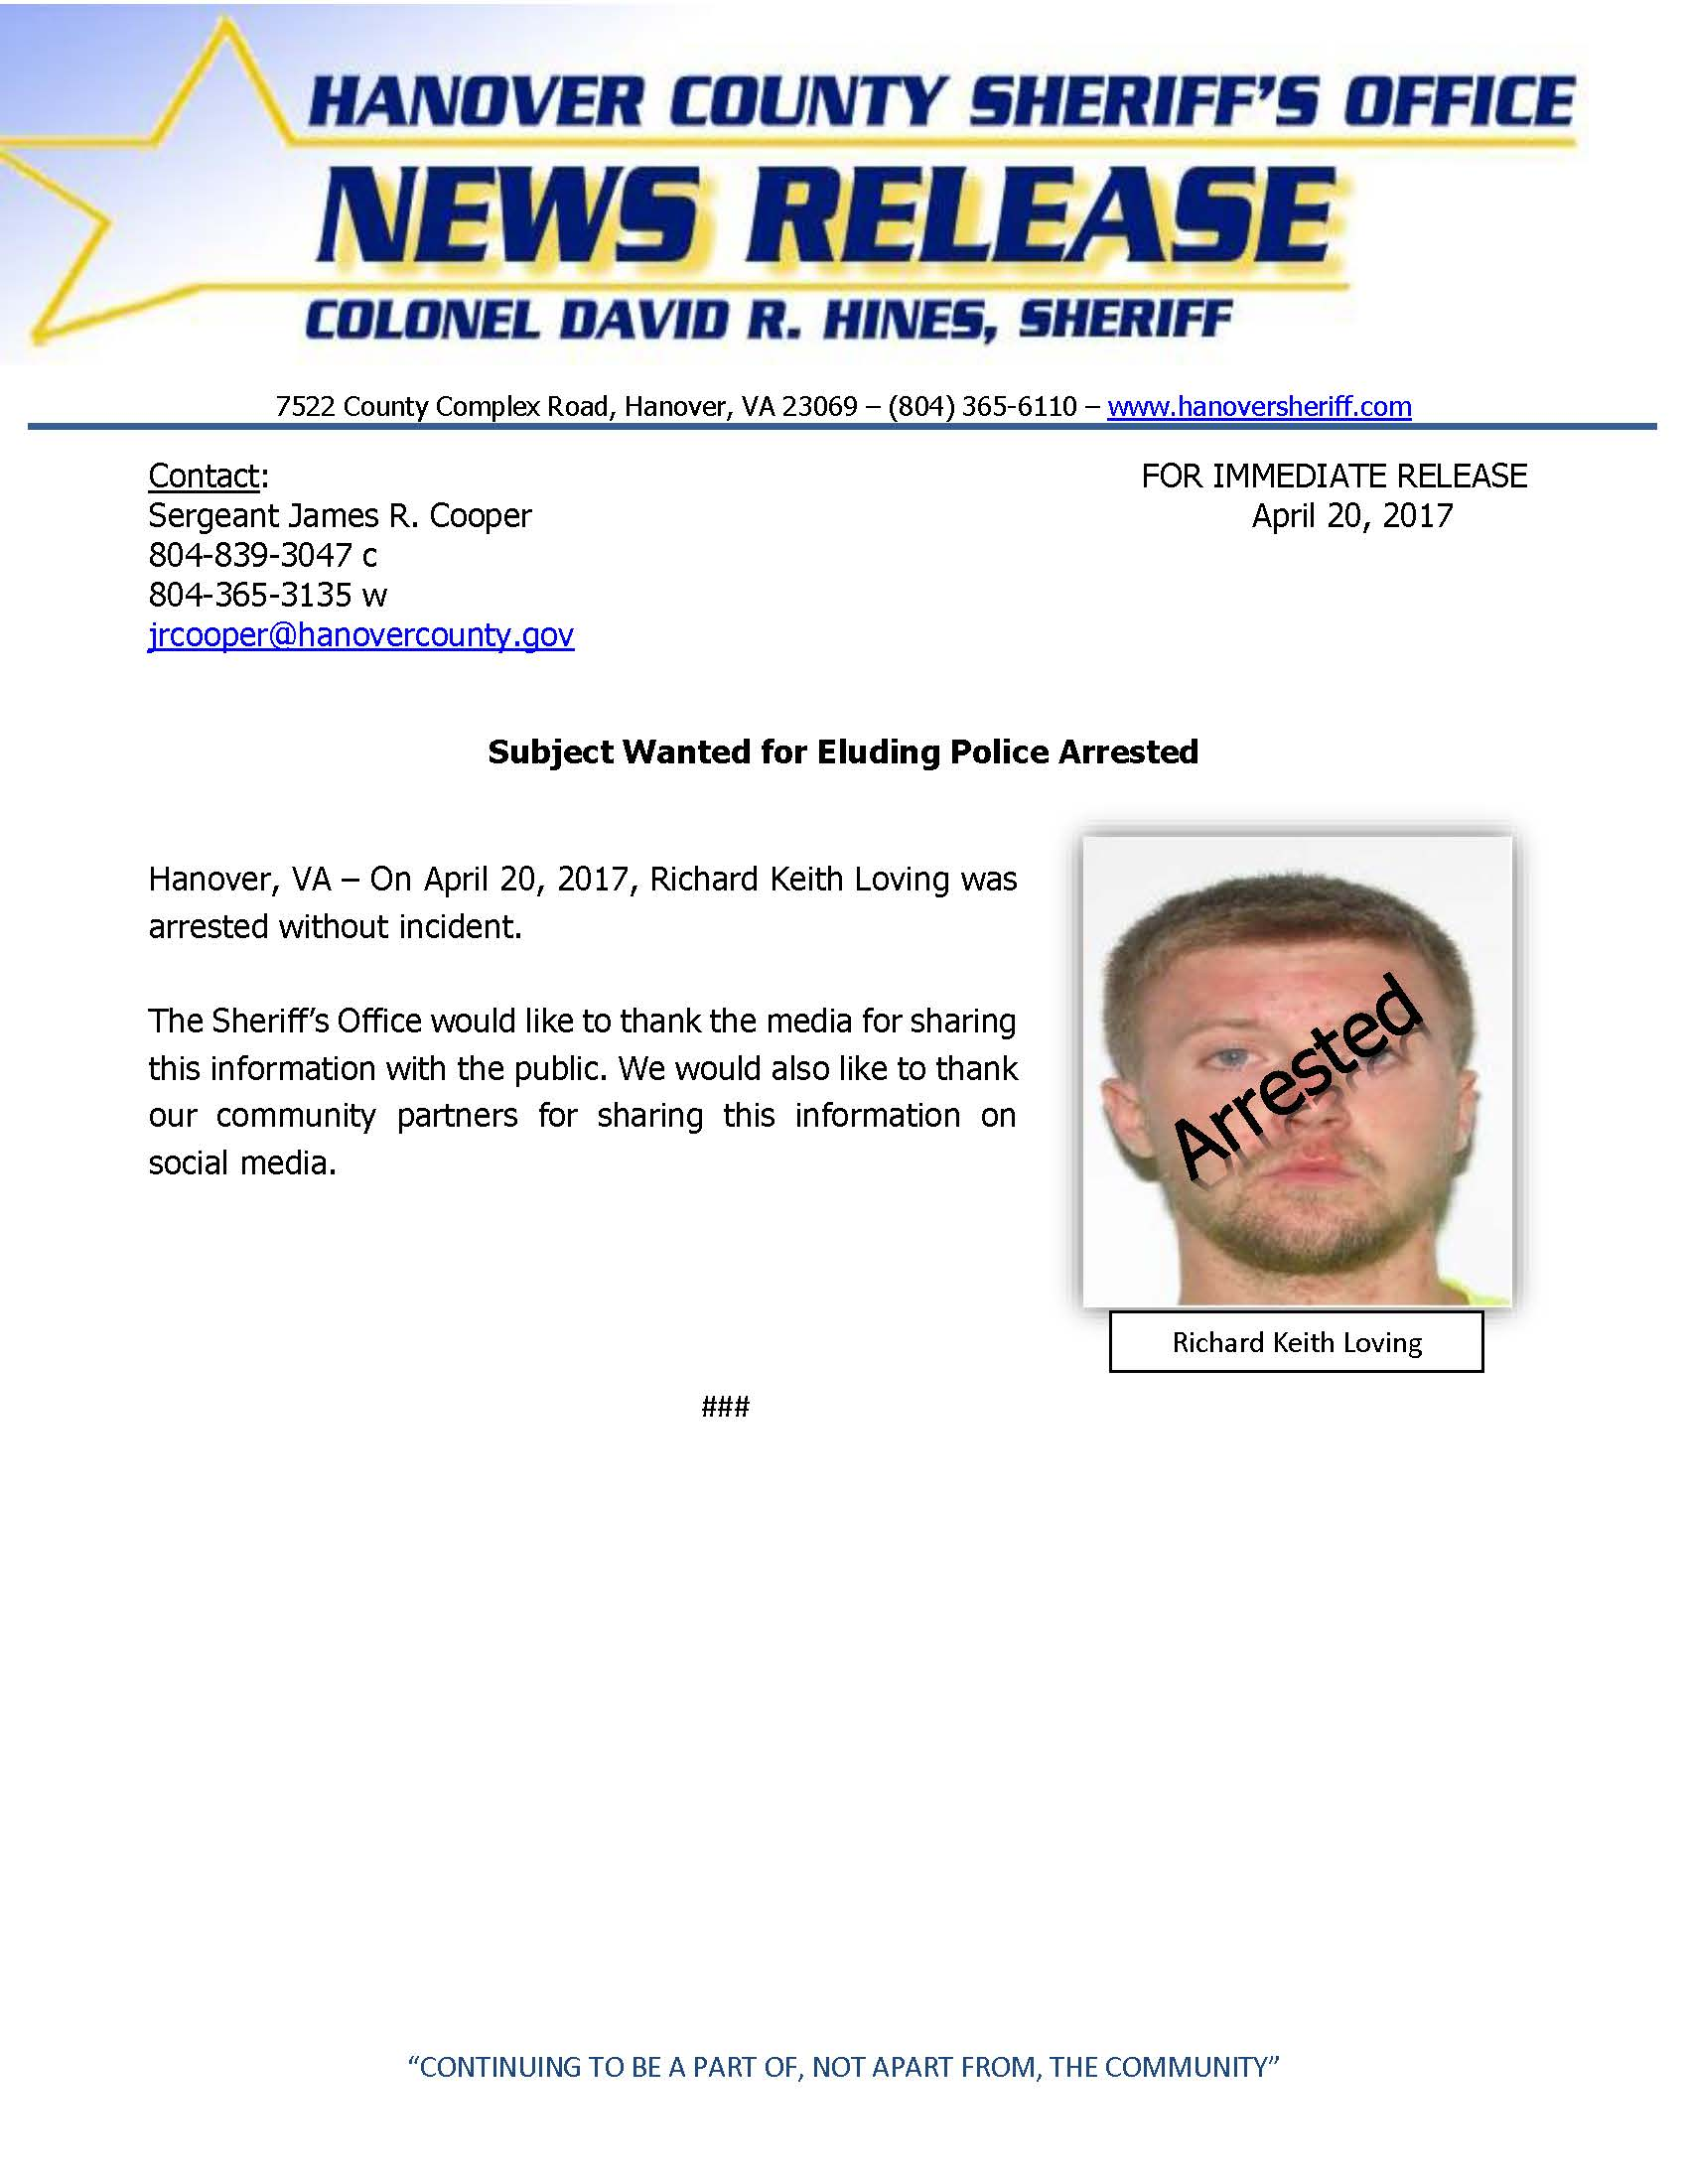 HCSO - Suspect Wanted for Eluding Police ARRESTED- April 2017